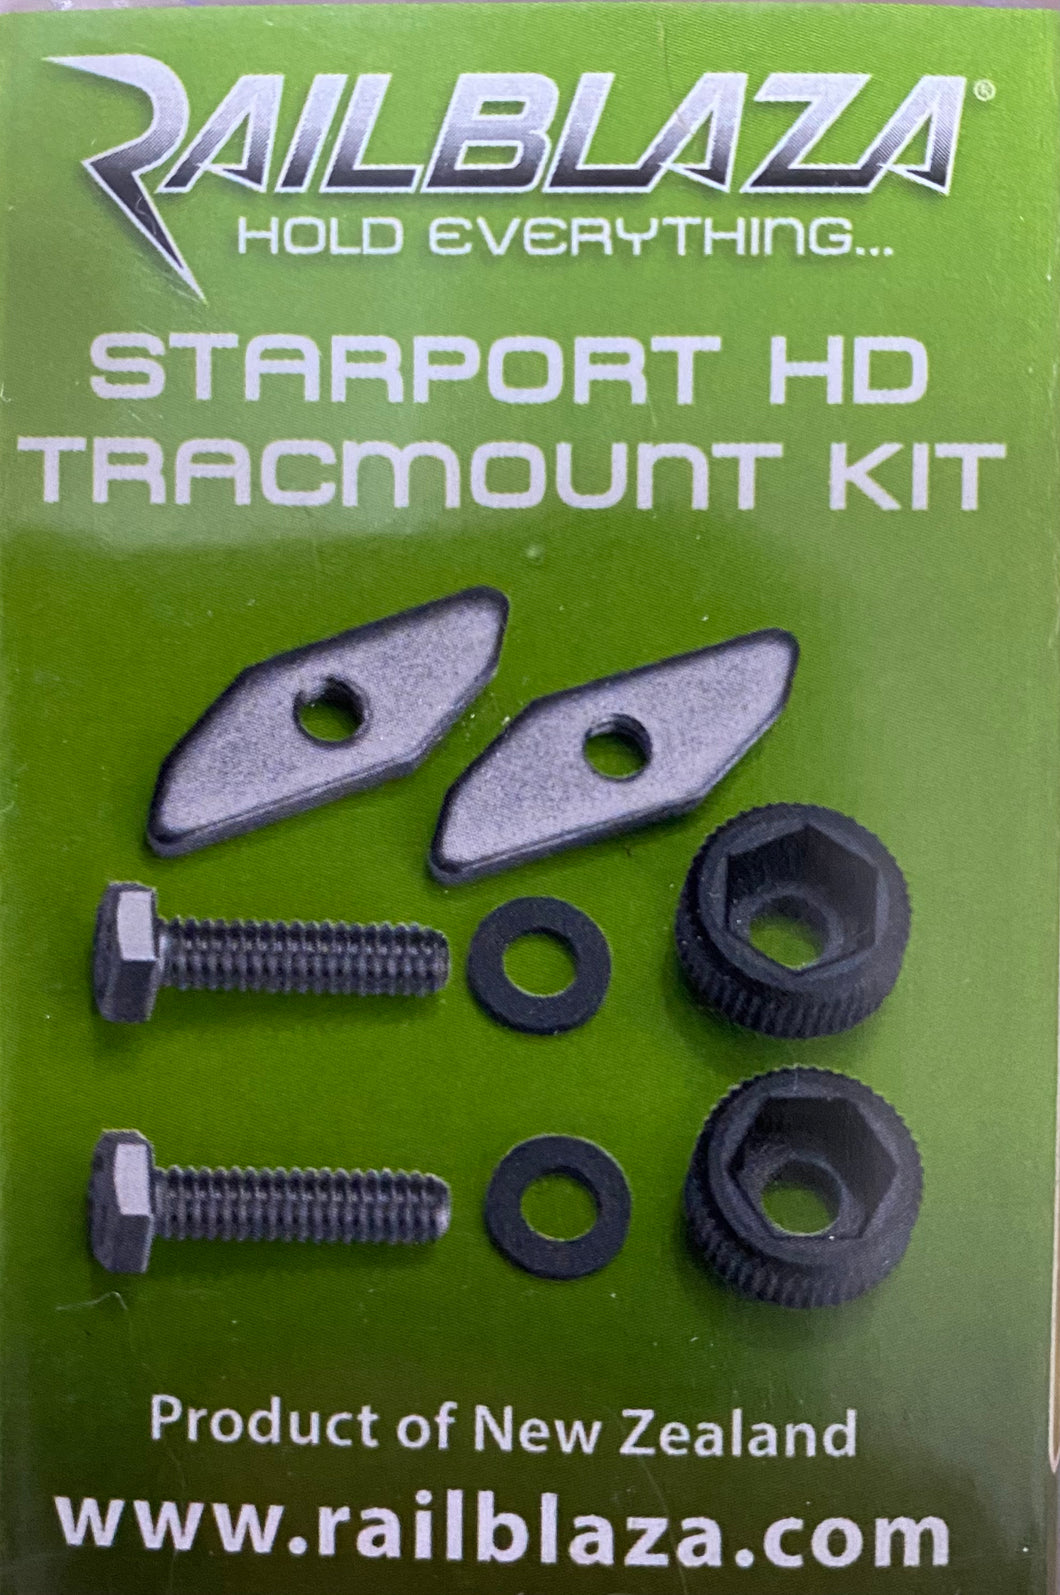 Railblaza Starport HD Tracmount Kit - Wild Coast Kayaks